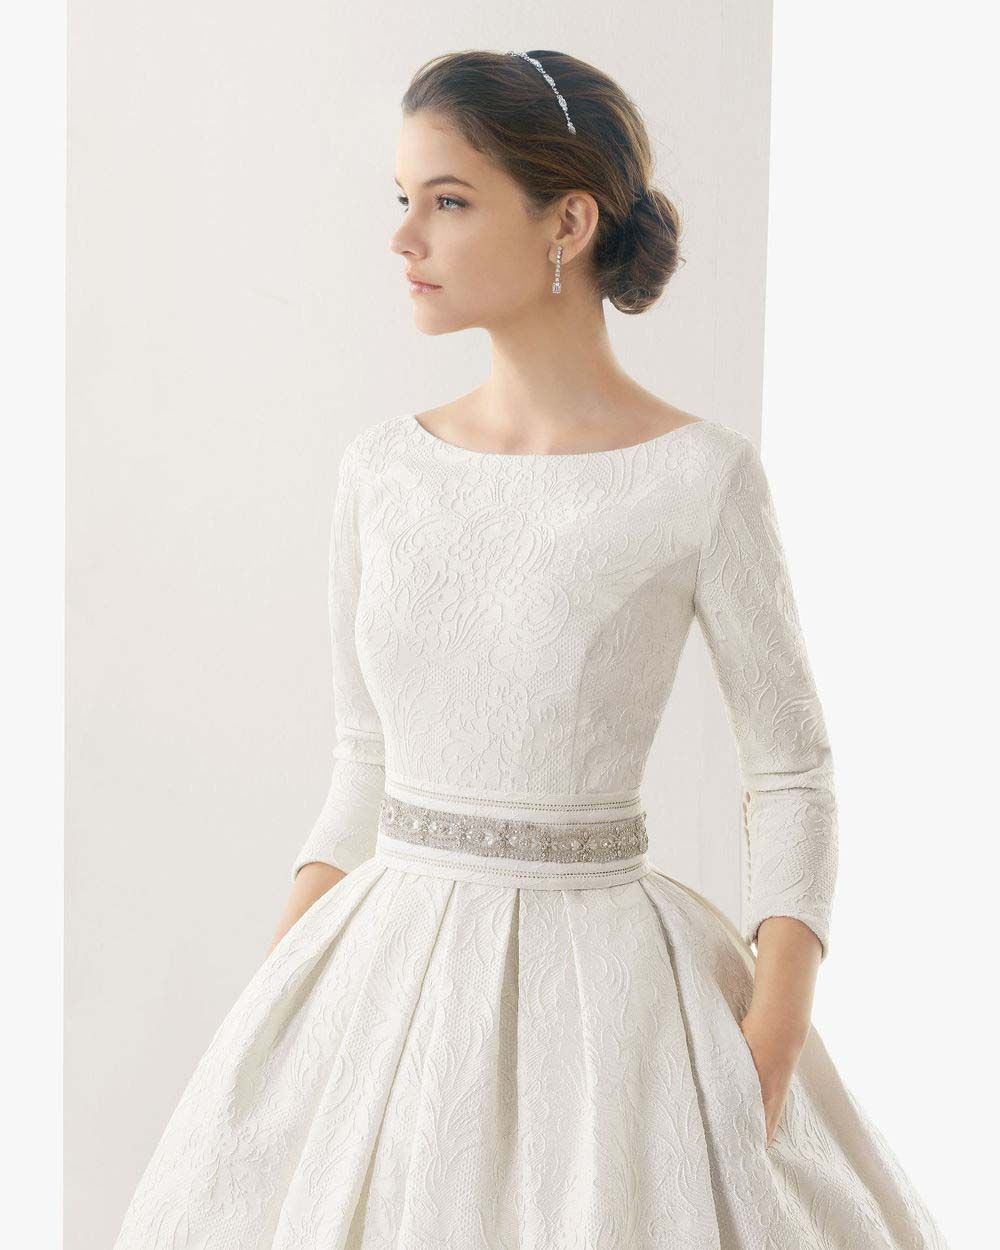 A Simple Audrey Hepburn Style Wedding Dress